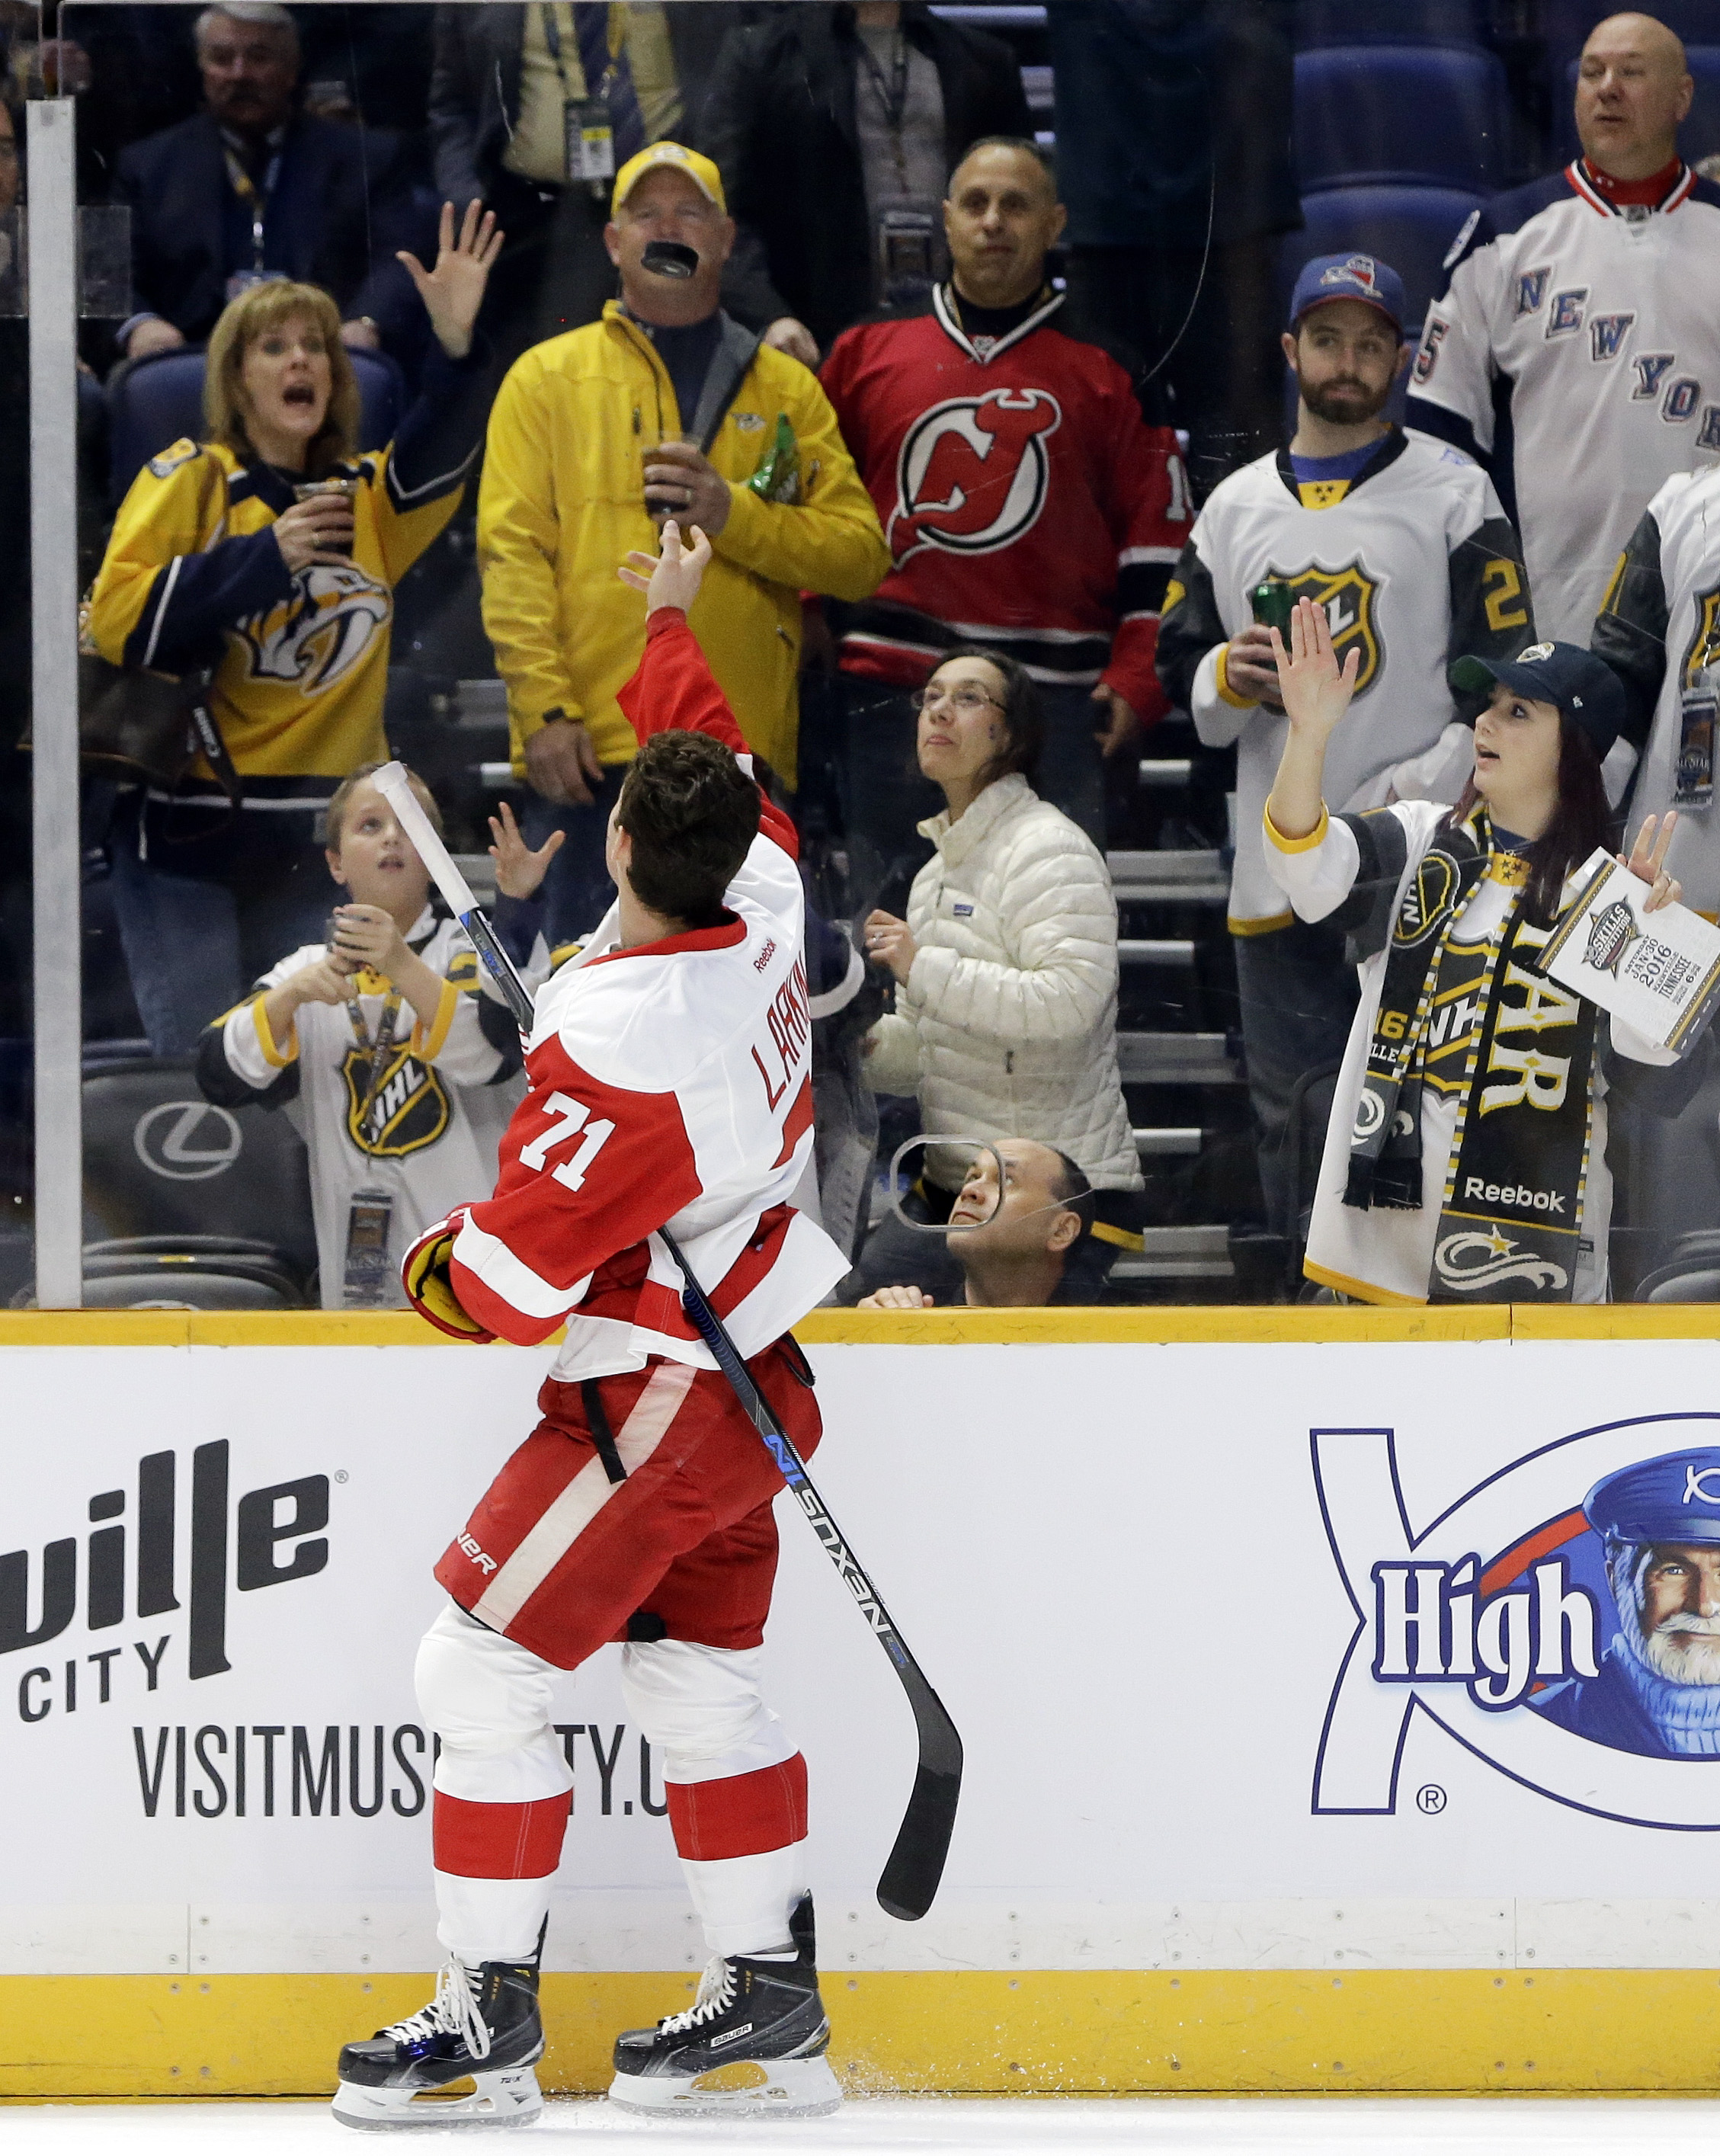 Detroit Red Wings forward Dylan Larkin (71) tosses a puck to fans before the NHL hockey All-Star game skills competition Saturday, Jan. 30, 2016, in Nashville, Tenn. (AP Photo/Mark Humphrey)